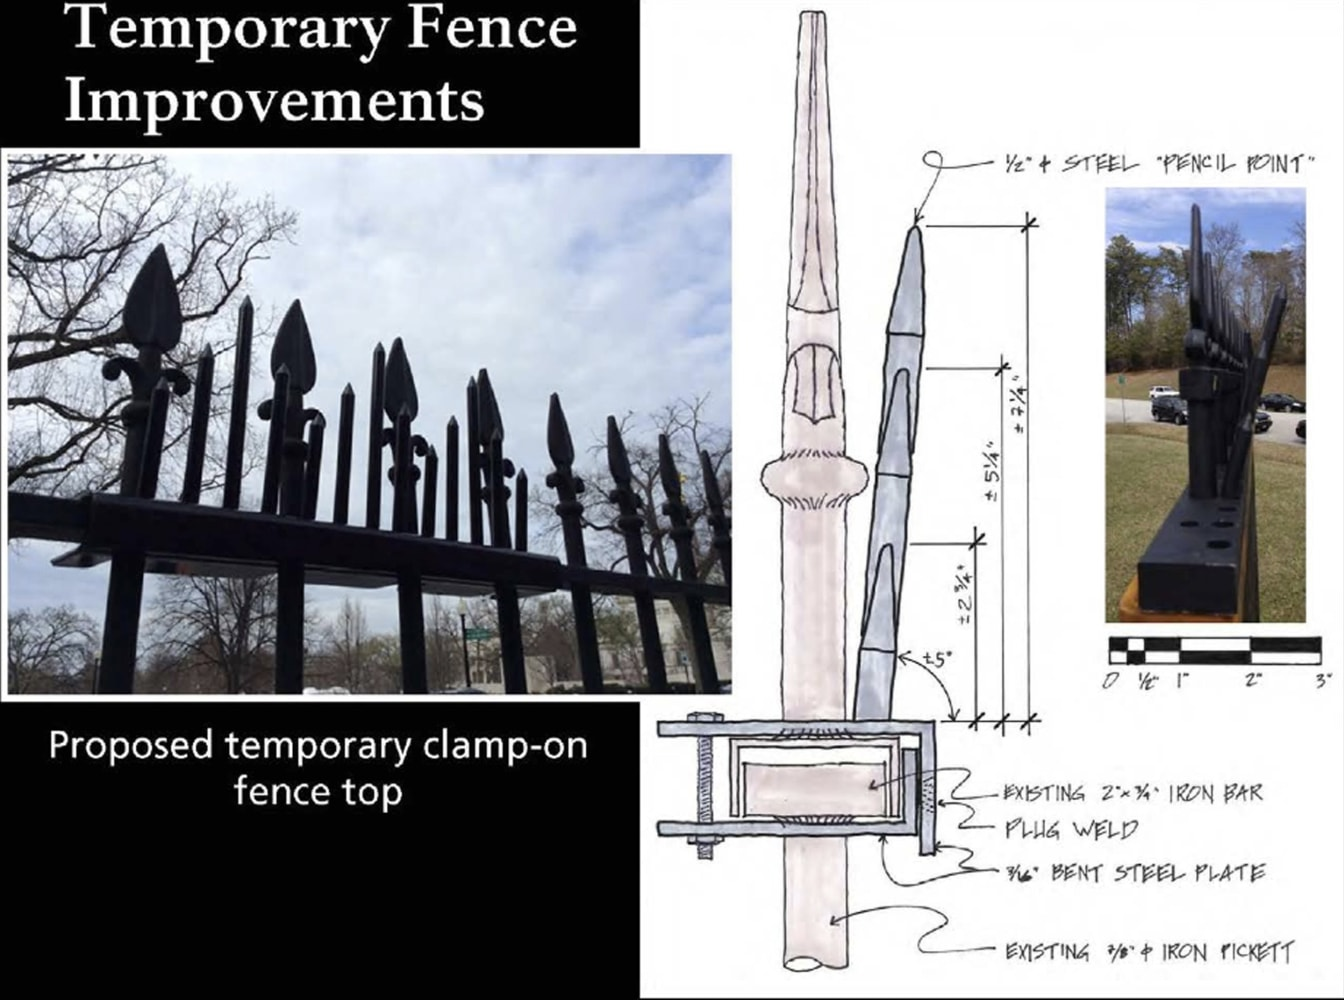 Secret service adding new metal spikes to white house fence this handout image provided by the national capital planning commission shows a diagram of a proposal for a temporary fence improvement at the white house pooptronica